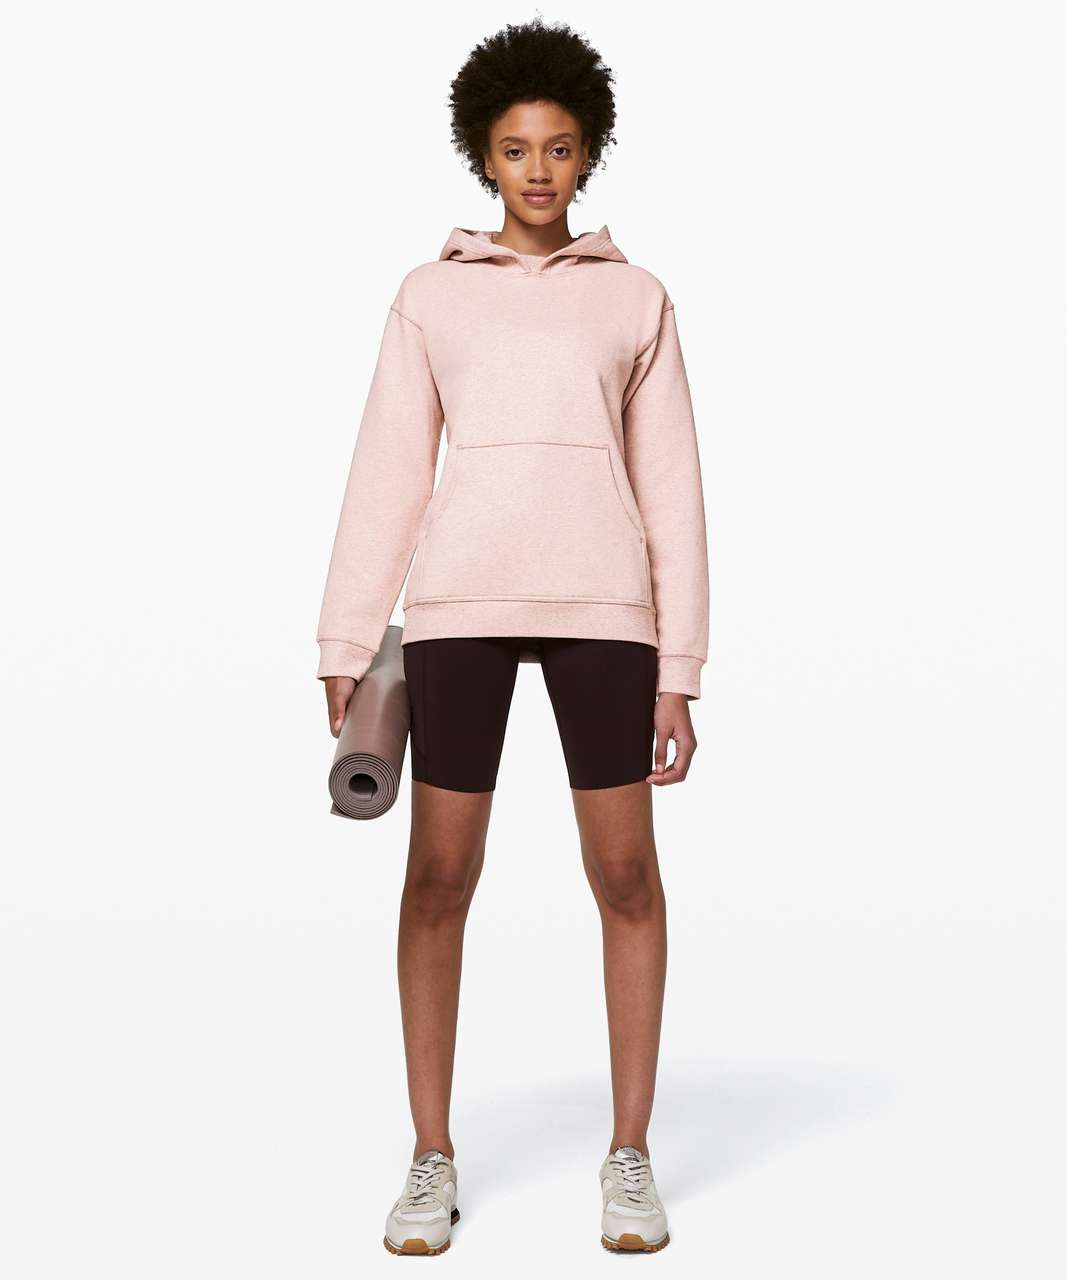 Lululemon All Yours Hoodie - Heathered Mink Berry / Mink Berry